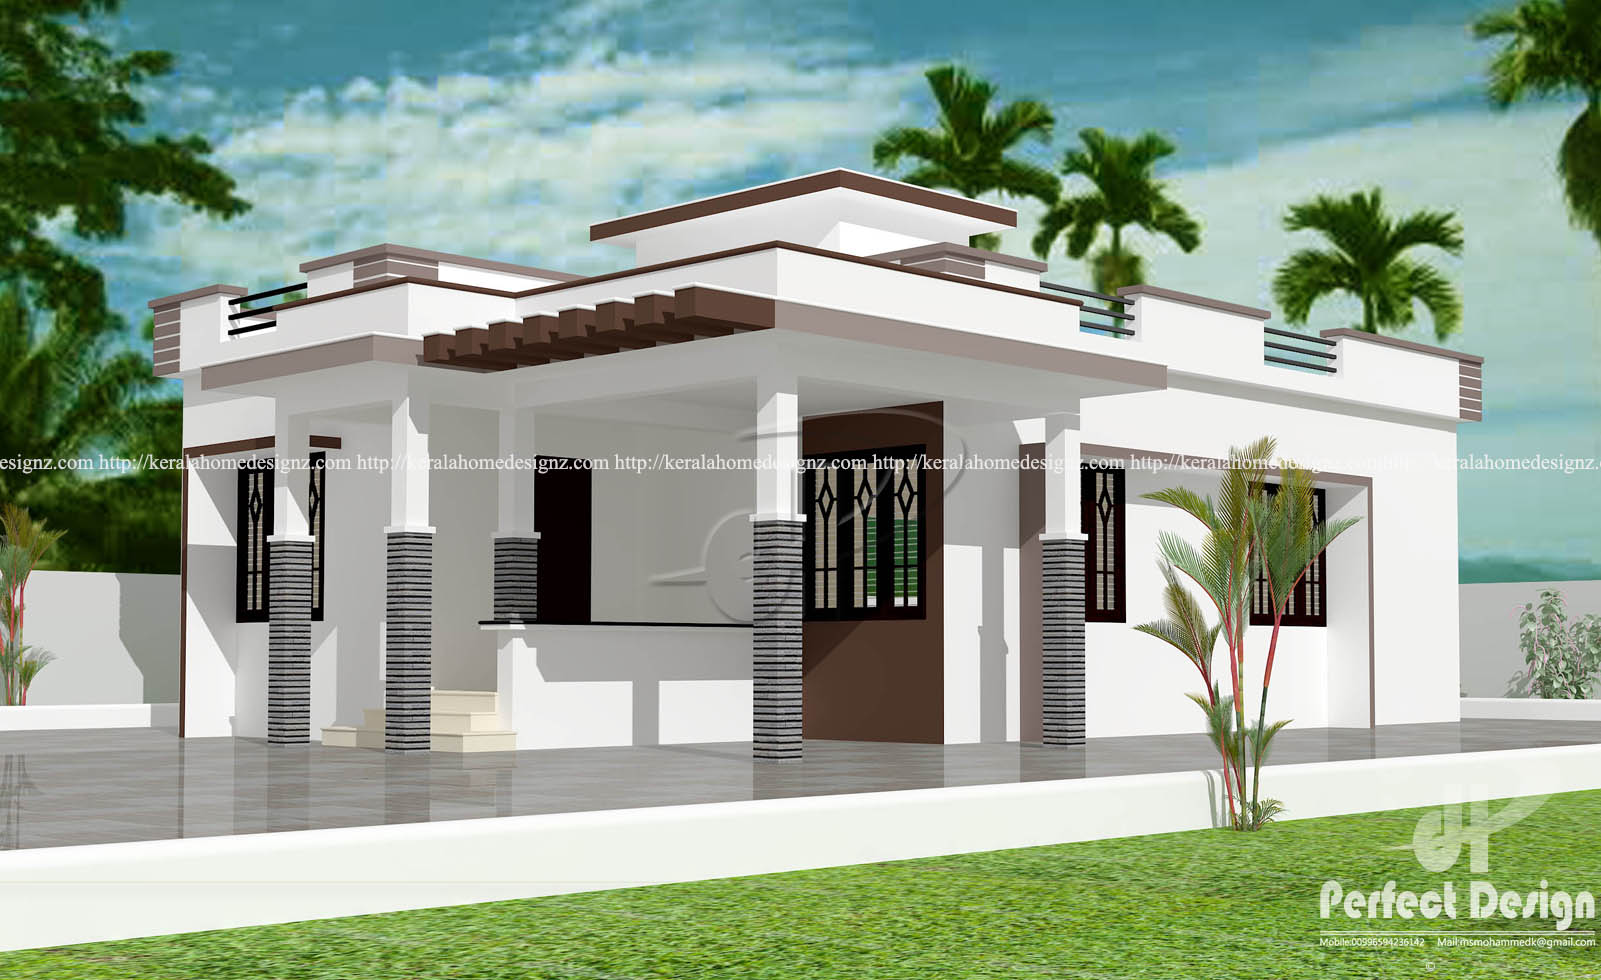 12 lakhs budget house plans in kerala for House blueprint designer